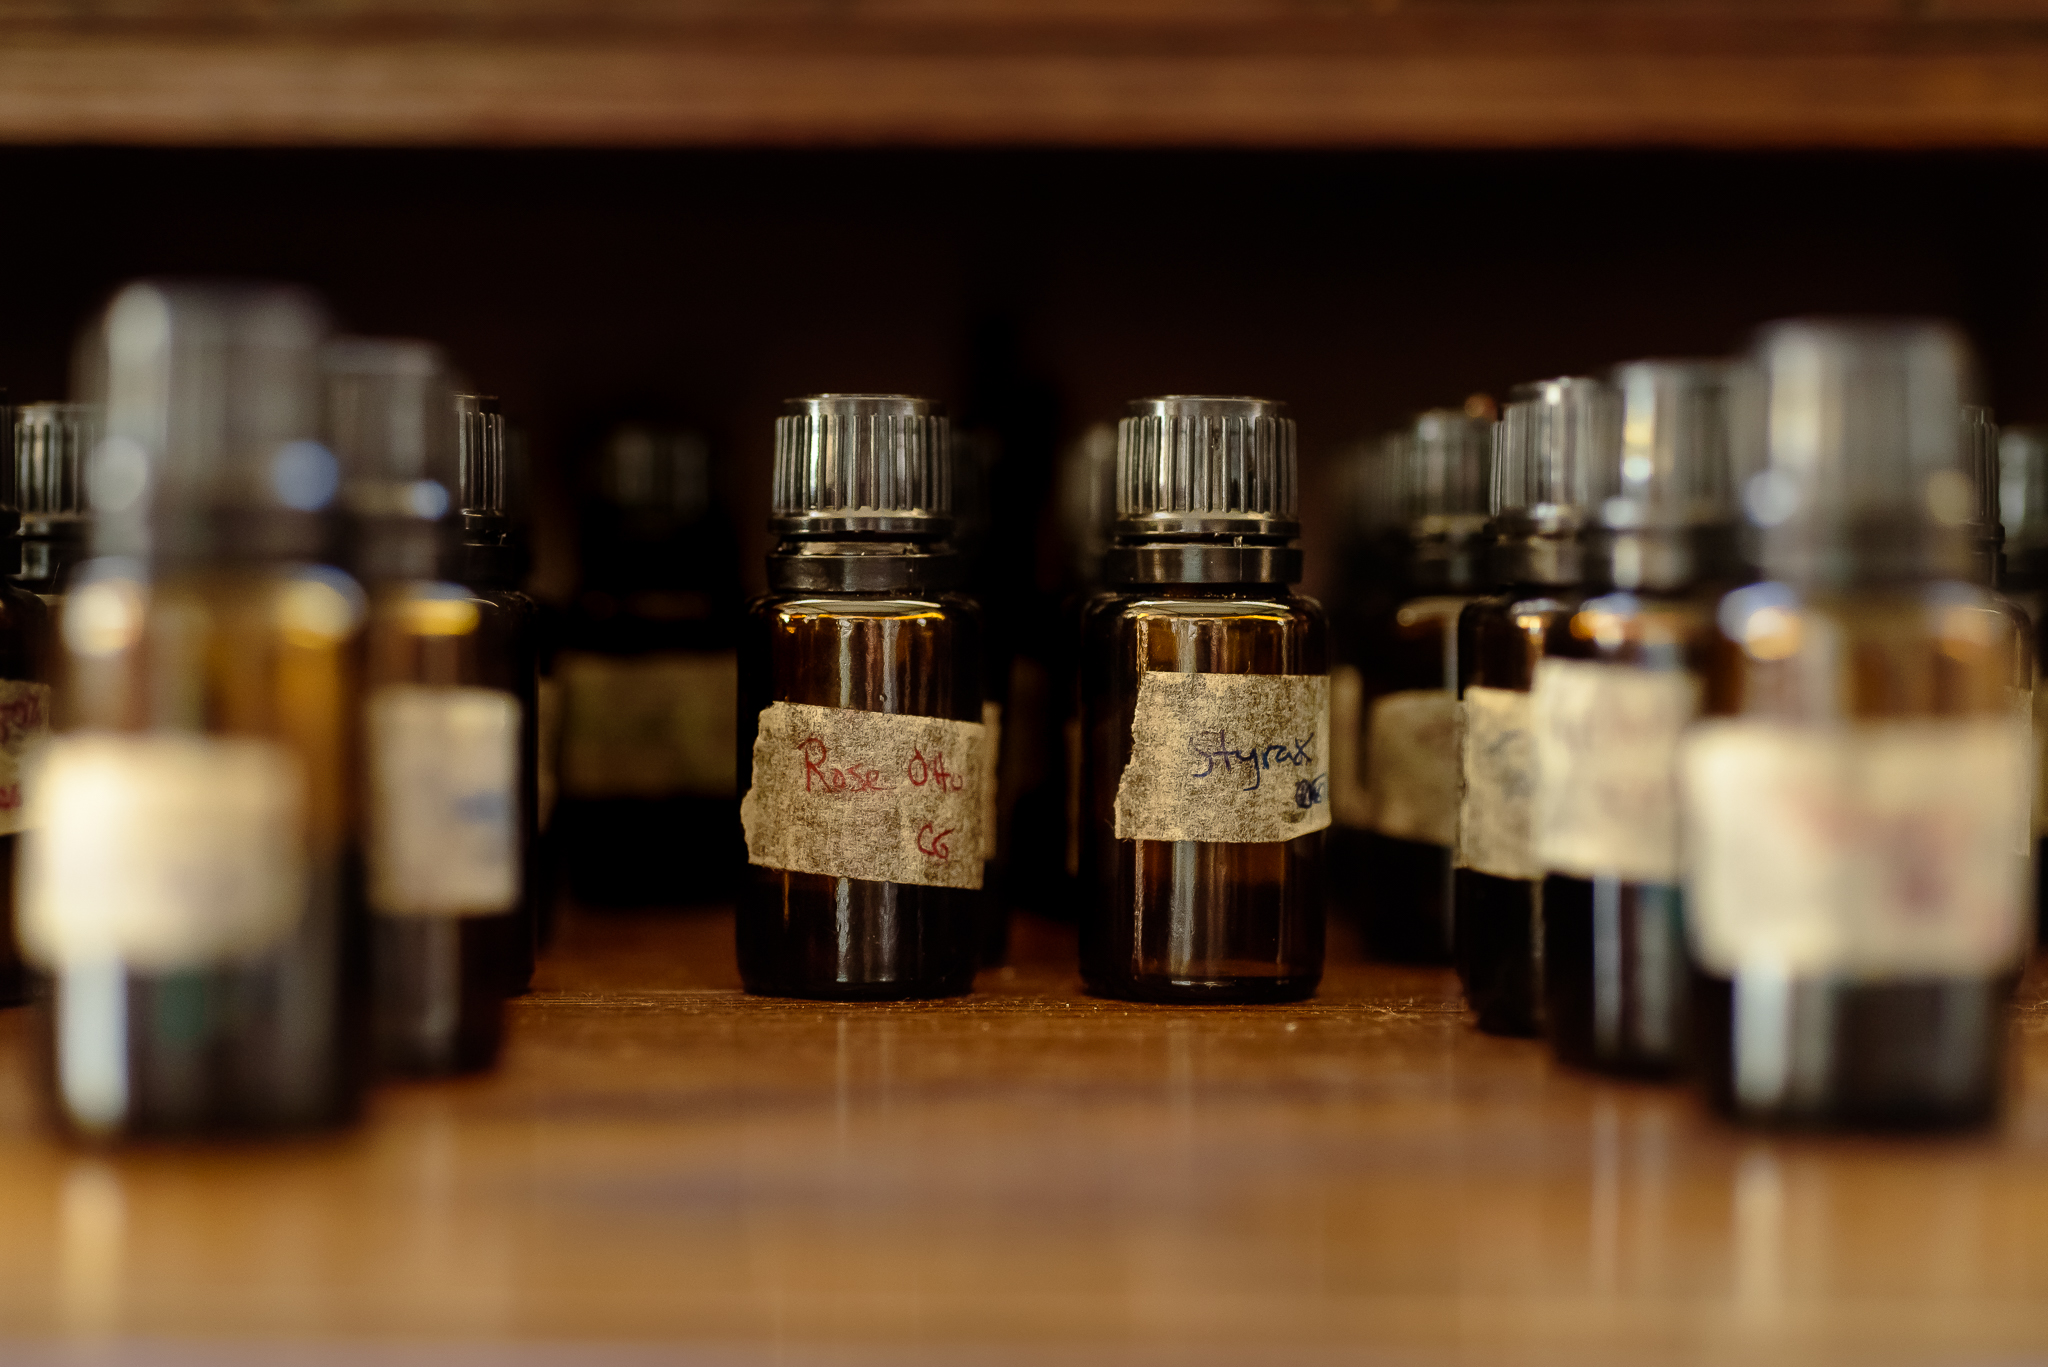 Countless essential oil vials line the shelves of Kevin's workspace.